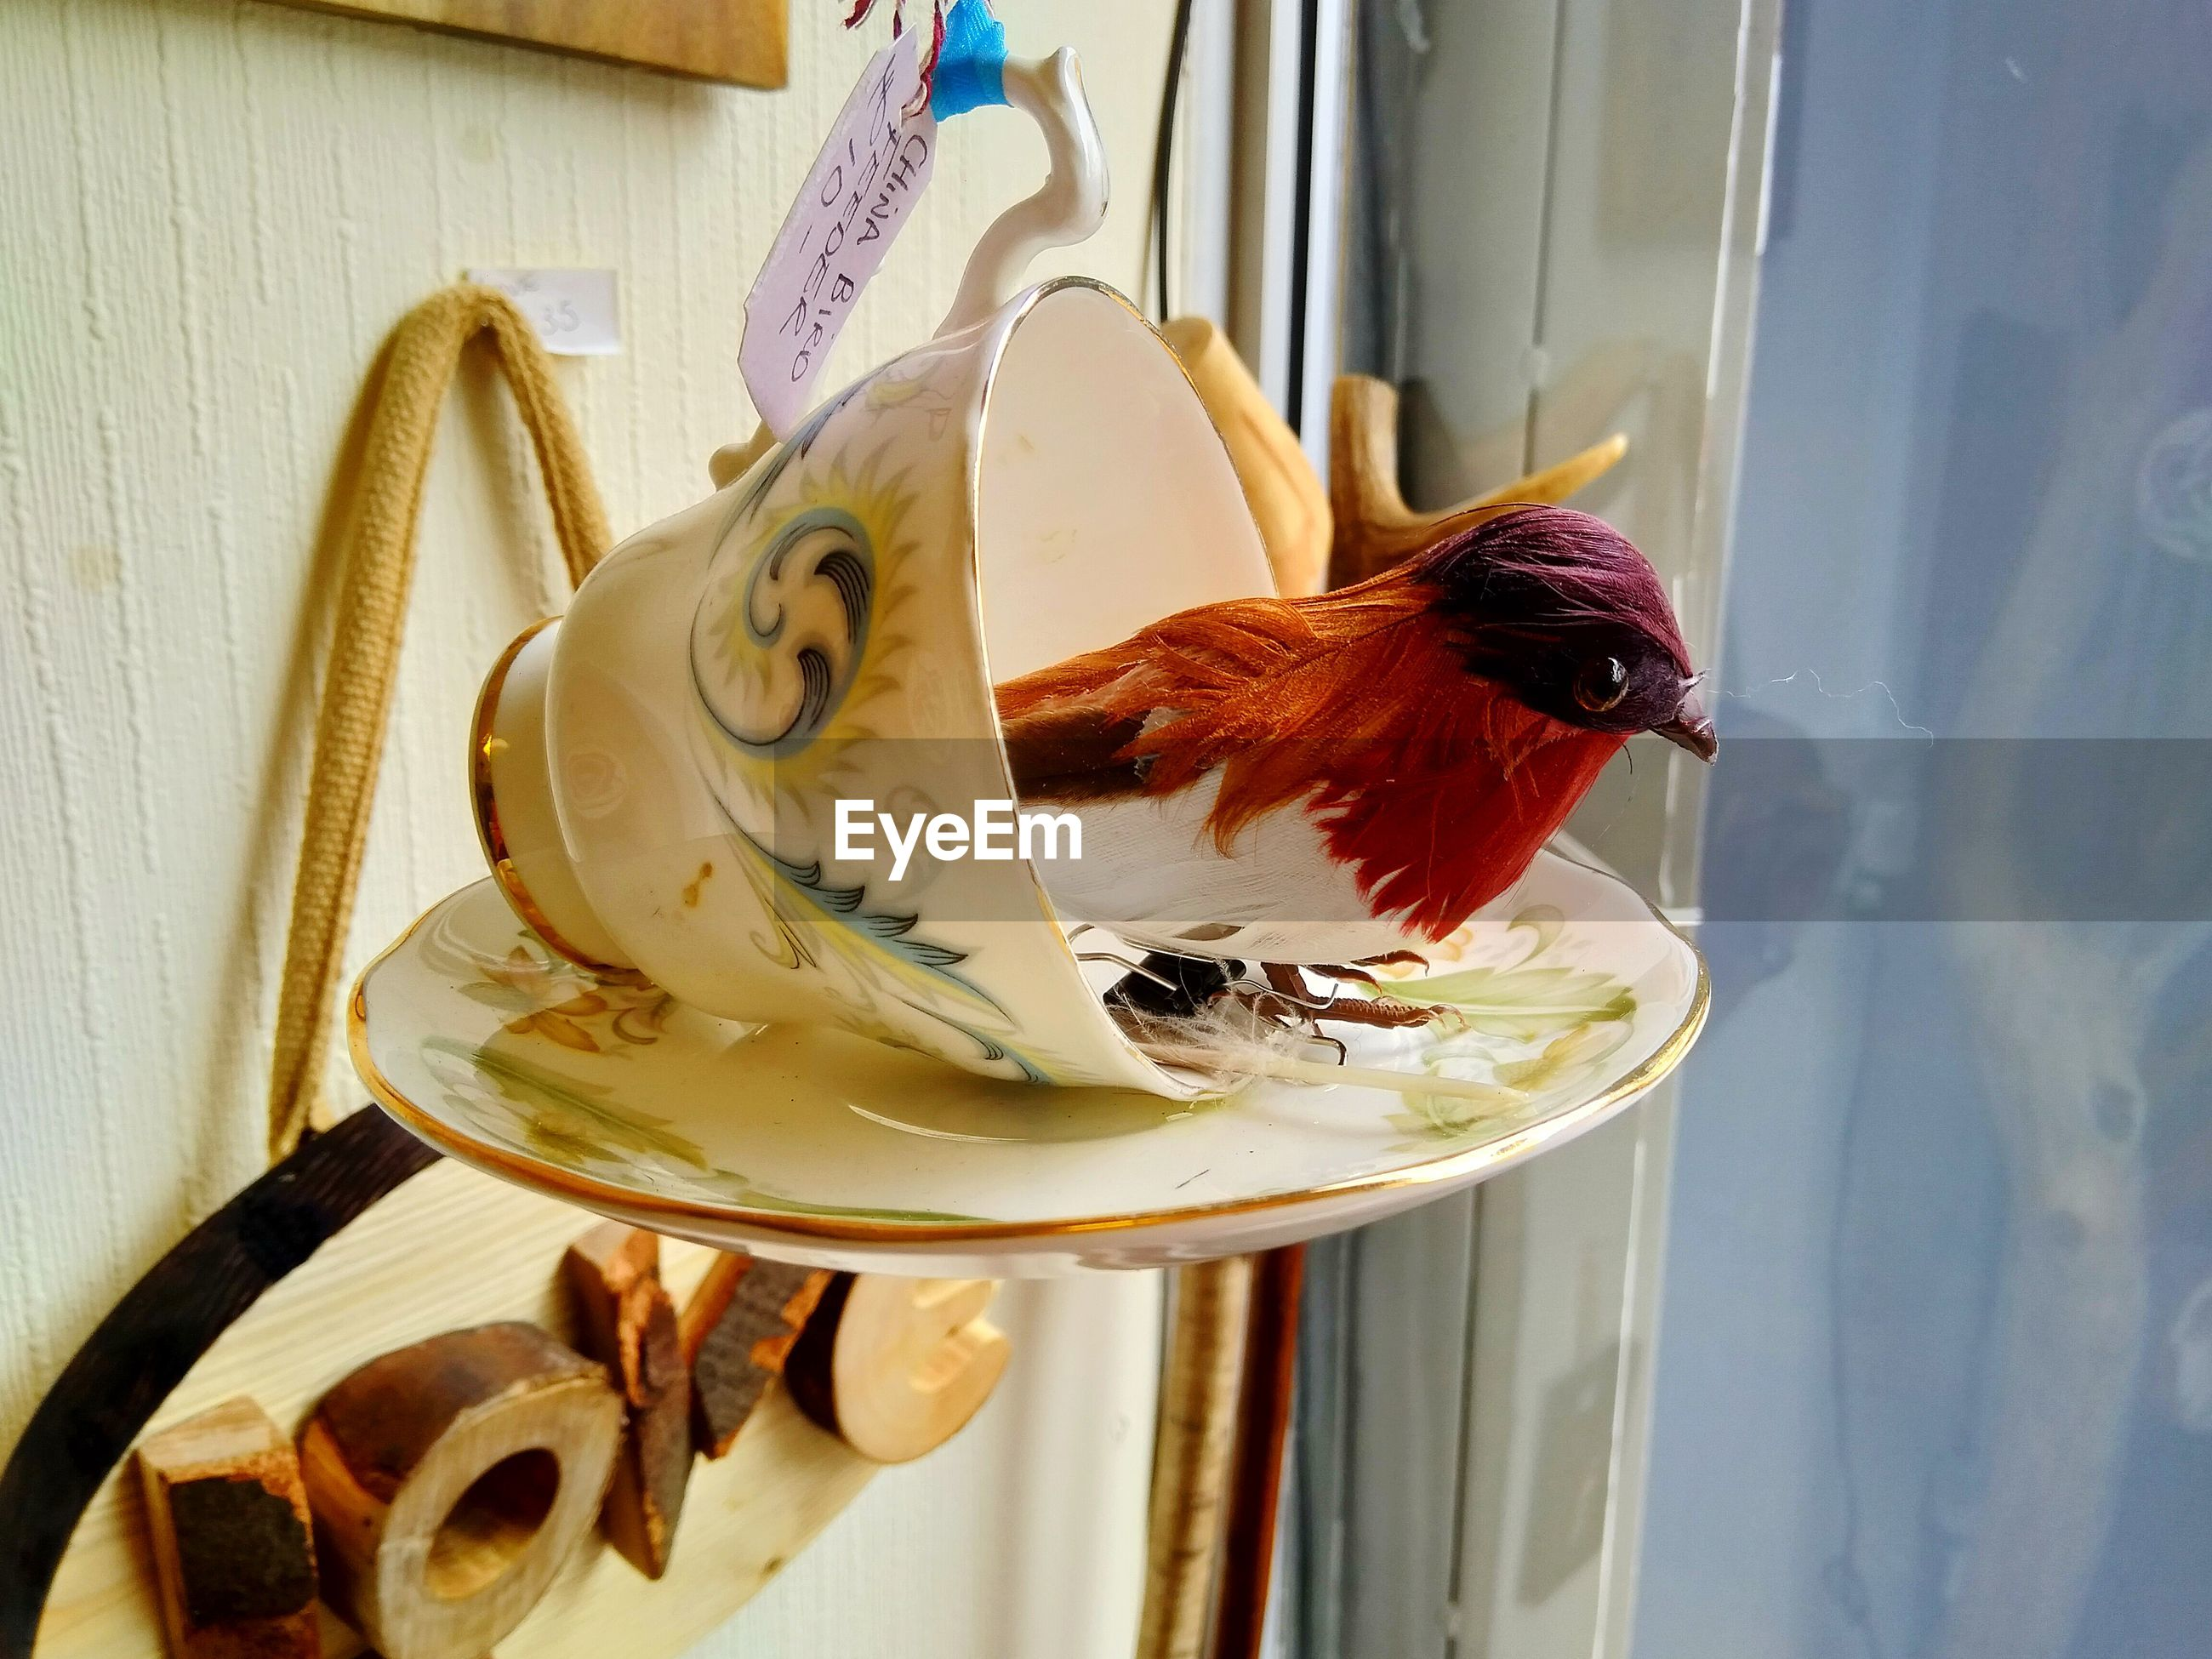 CLOSE-UP OF A BIRD IN A GLASS